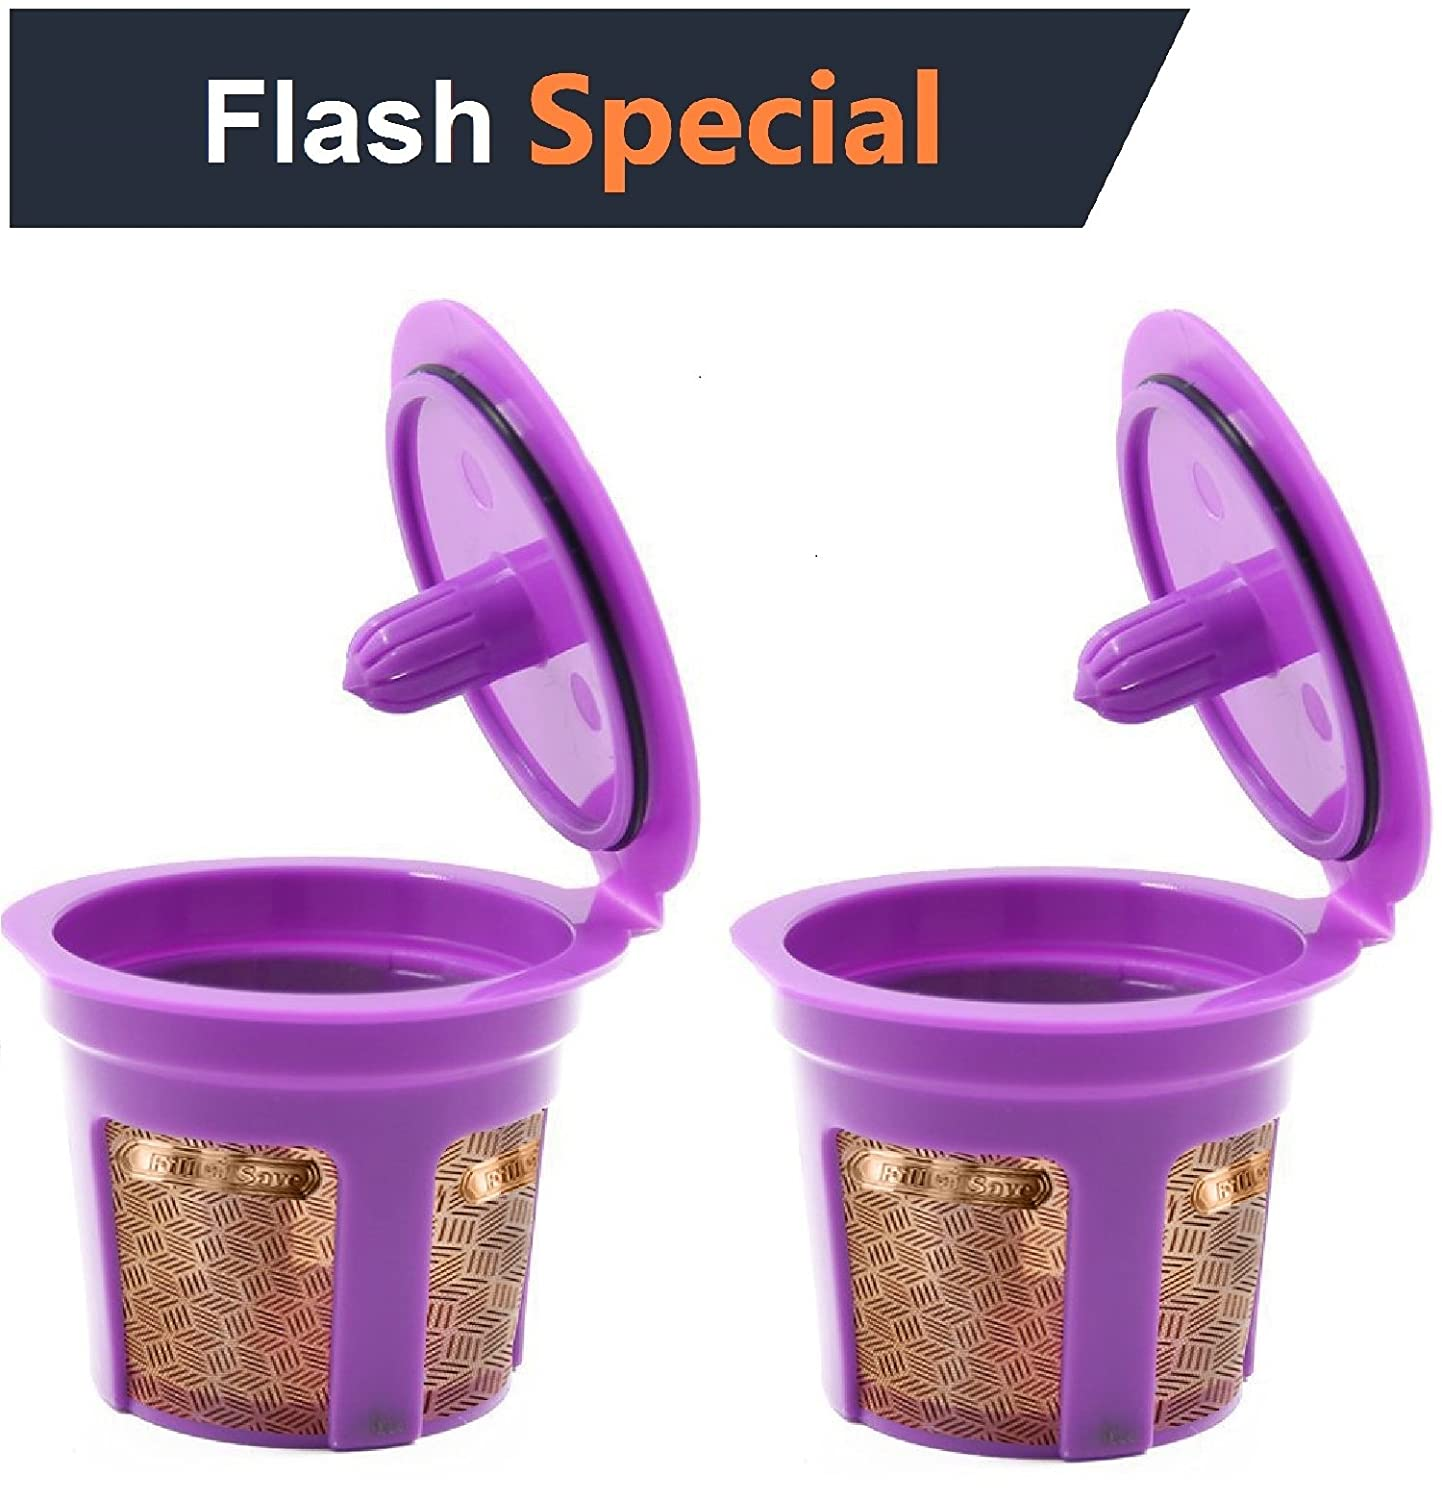 Fill N Save 2 Pack Reusable K Cups 24 K Gold plated Refillable Keurig Filter for Keurig 2.0 and 1.0 Coffee Machines. Excellent Filter Replacement to Coffee Pods and Accessories. EcoGreen Savings